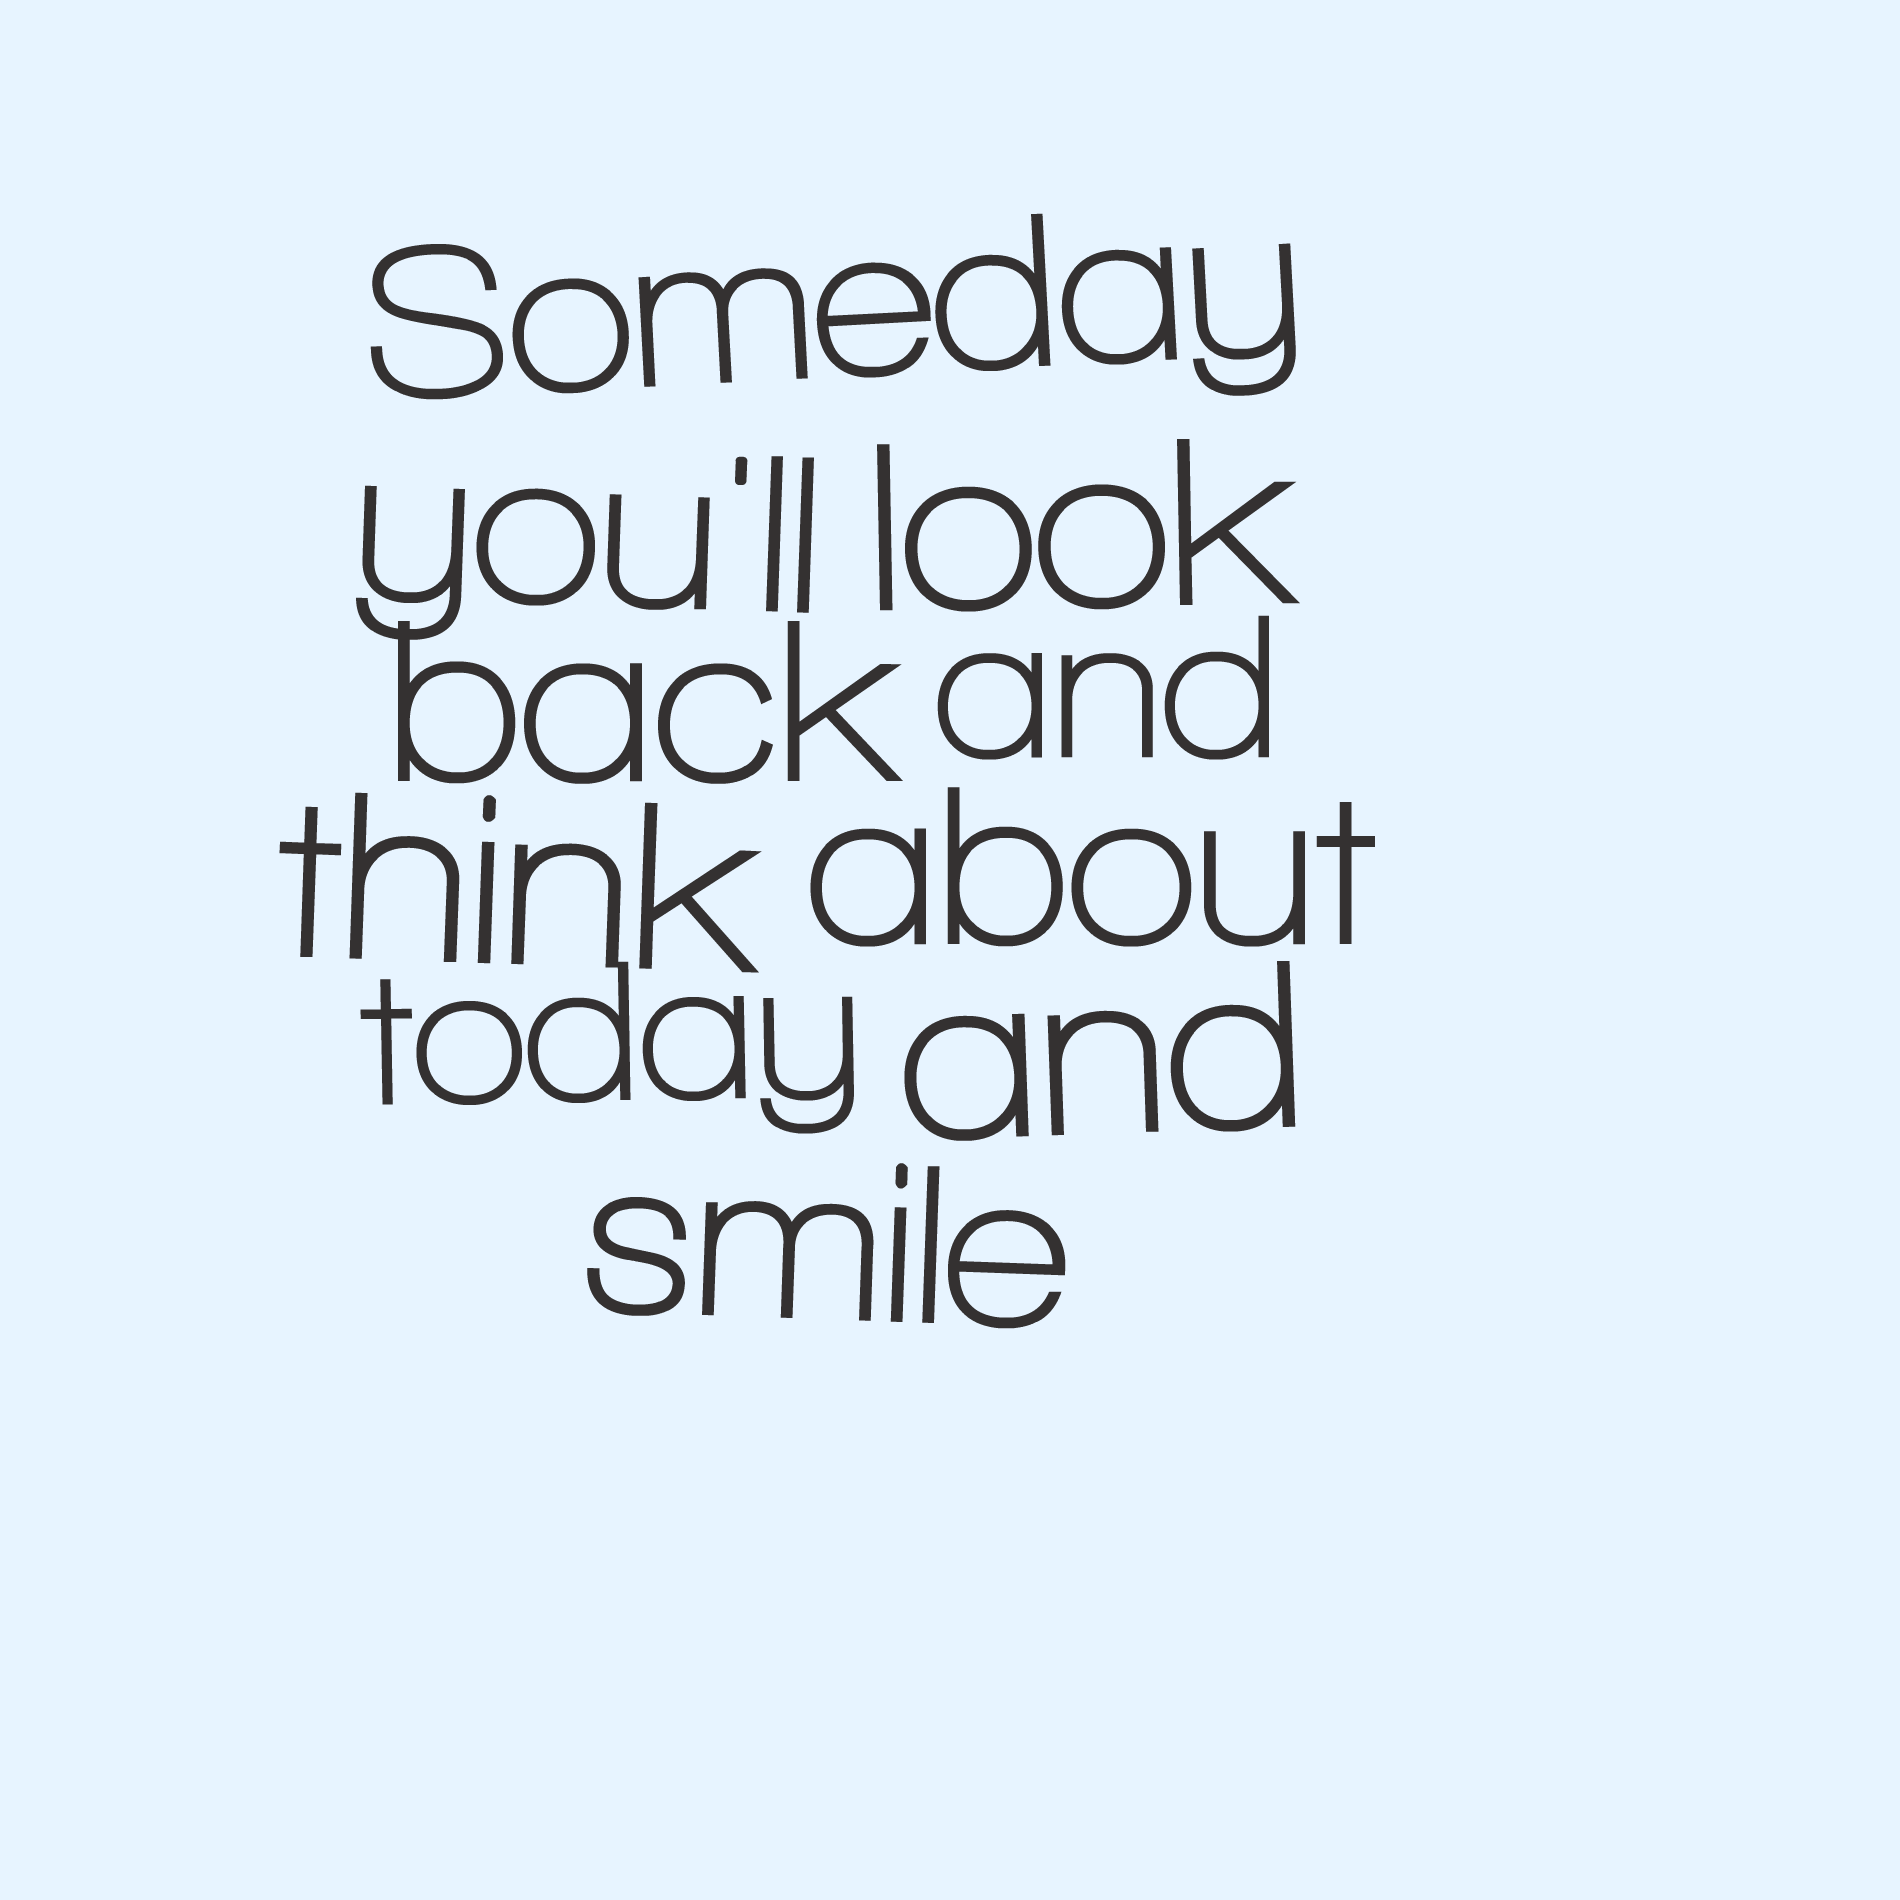 [Image] Someday …